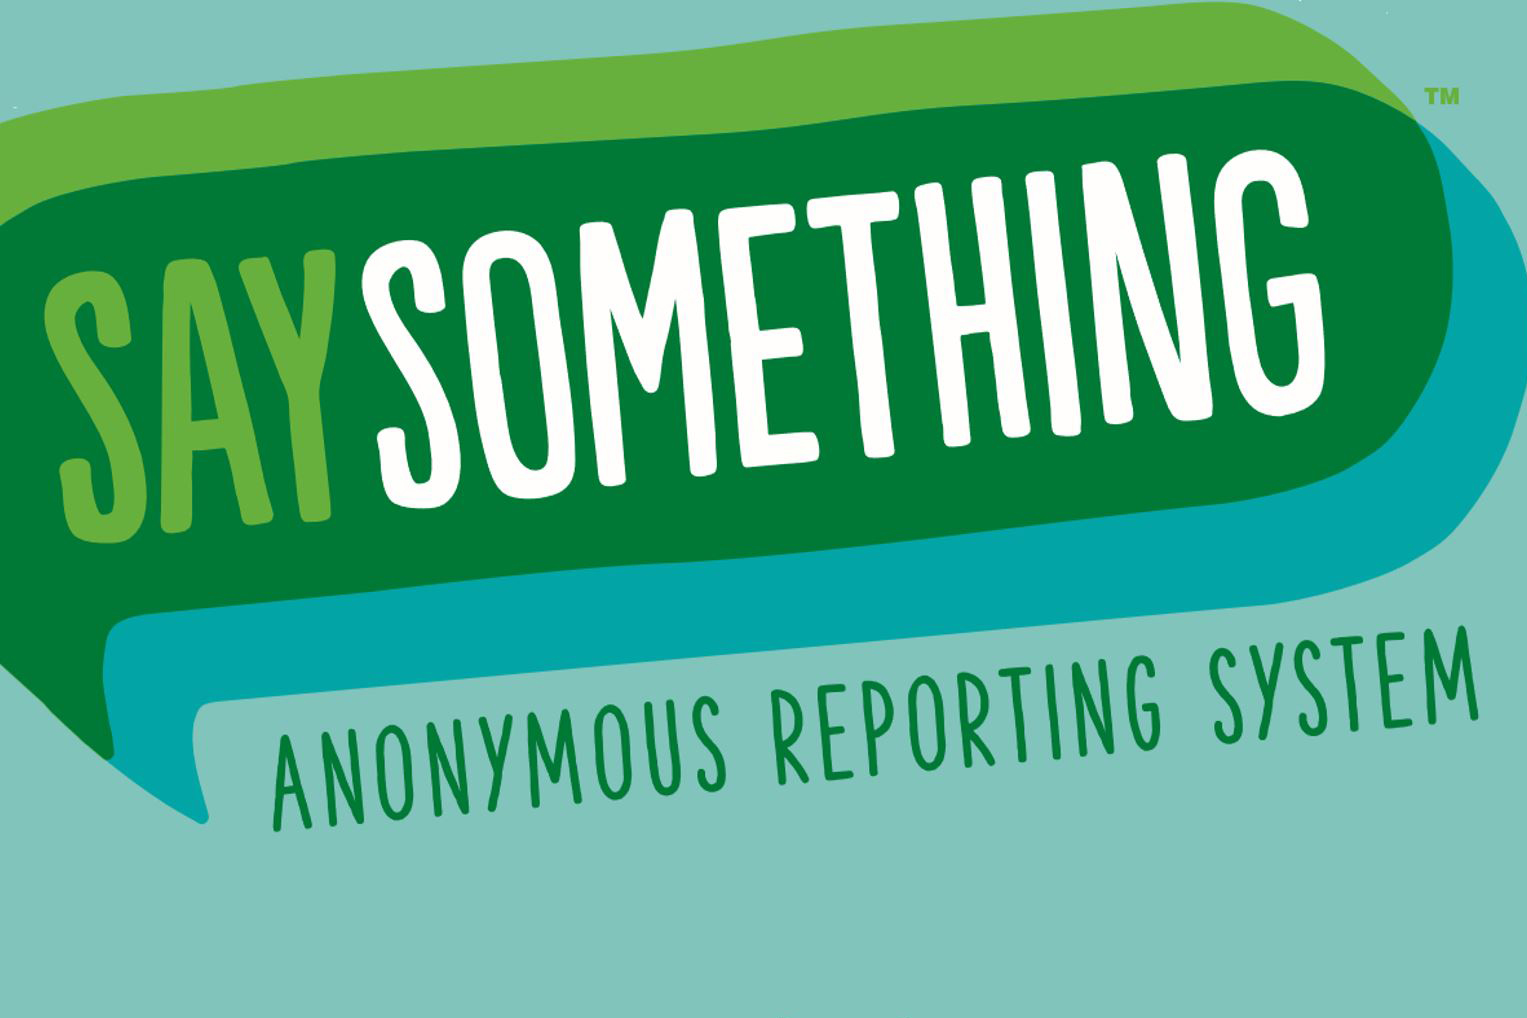 Green logo for say something reporting system